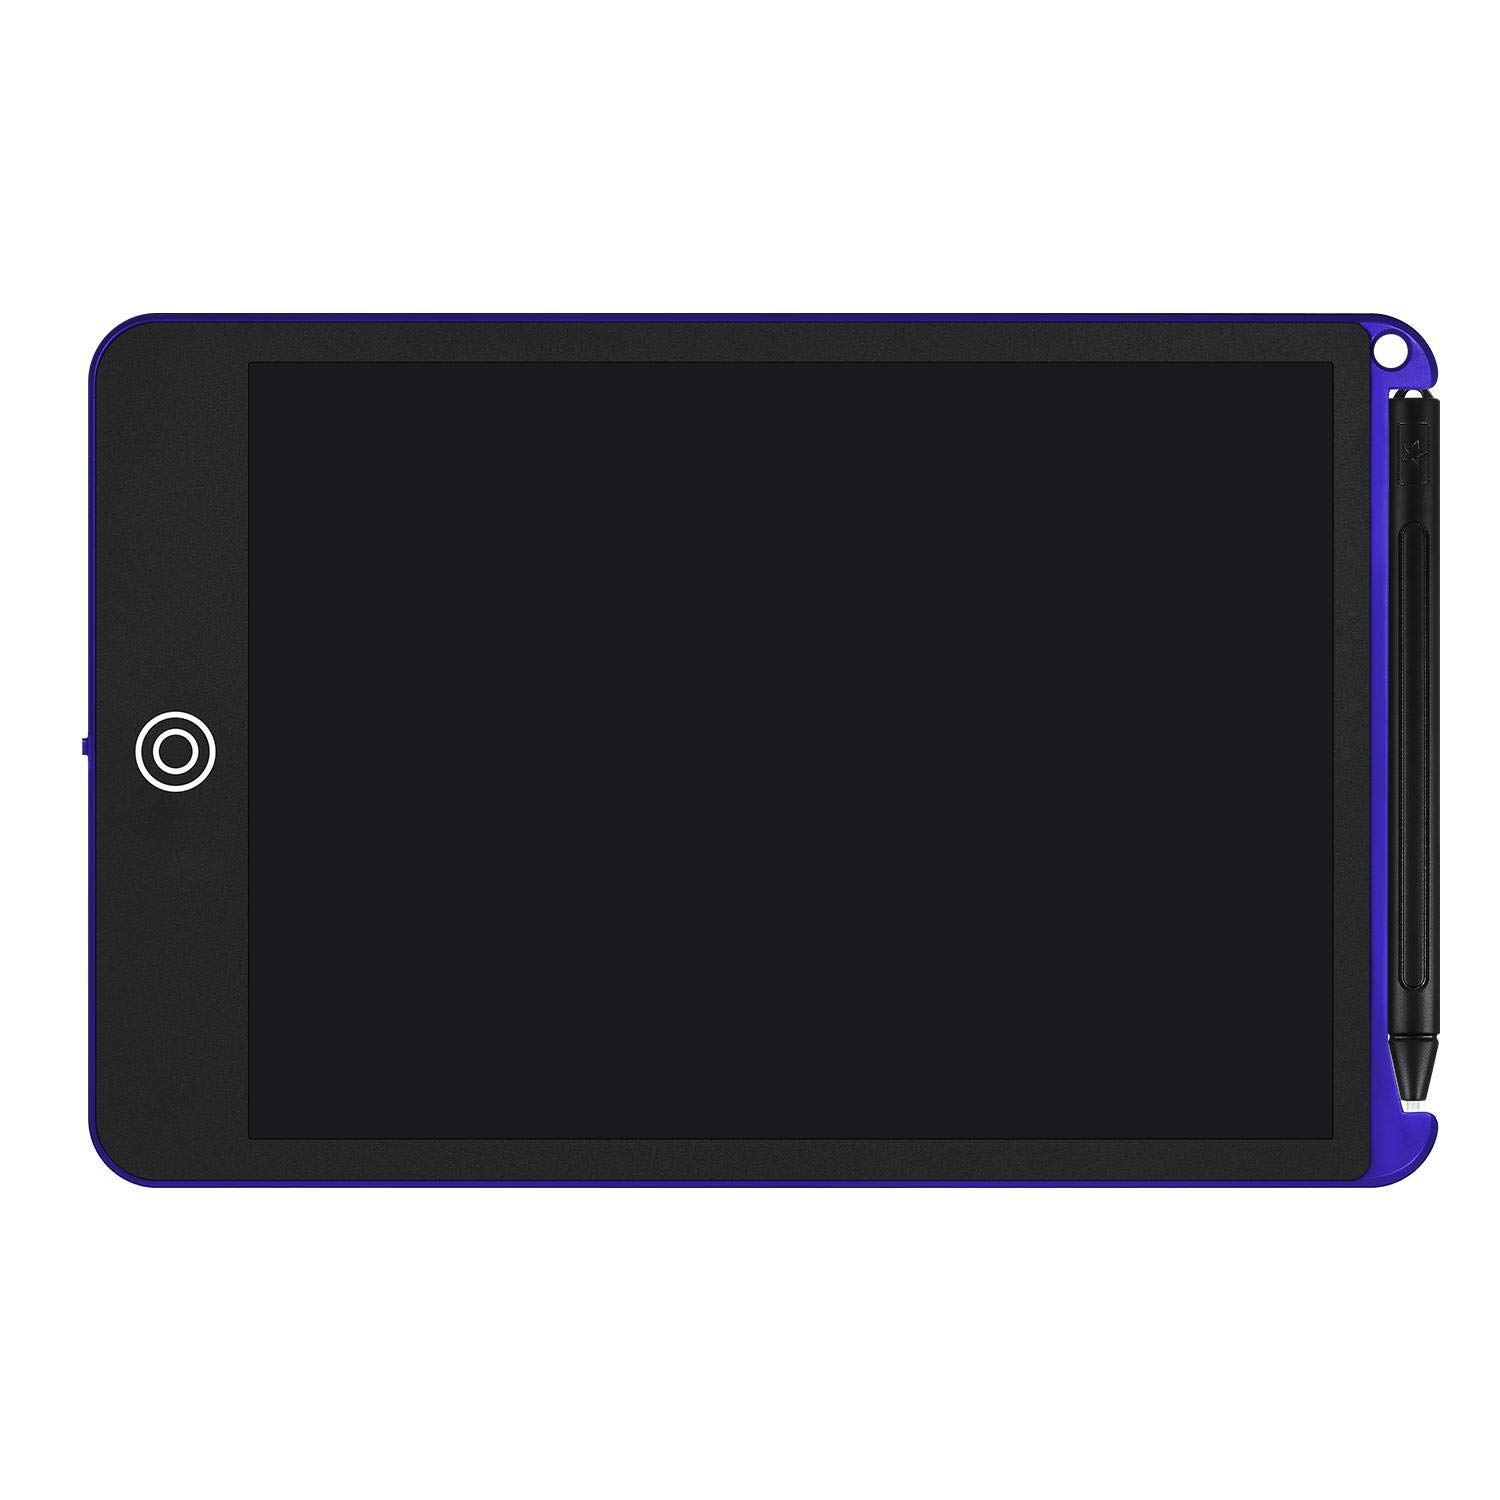 xinnio LCD Screen Handwriting Tablet Children Electronic Drawing Board with Stylus Digital Handwriting Pads